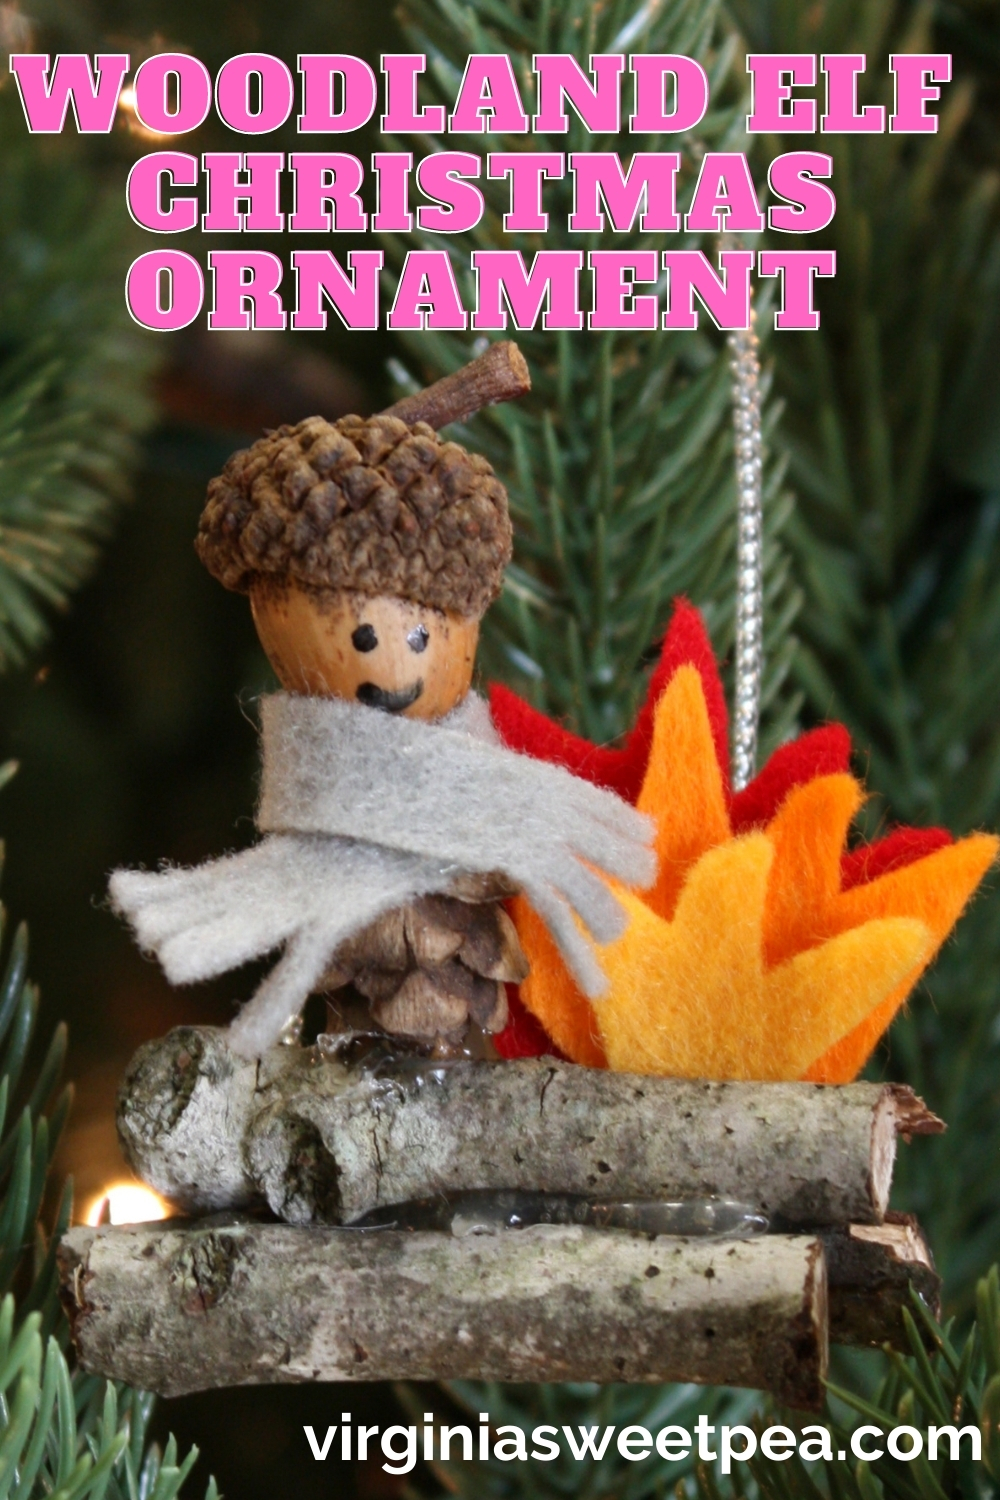 Woodland Elf Christmas Ornament - Learn how to make this adorable ornament using items found in nature plus a few craft supplies.  #diychristmasornament #handmadechristmasornament via @spaula